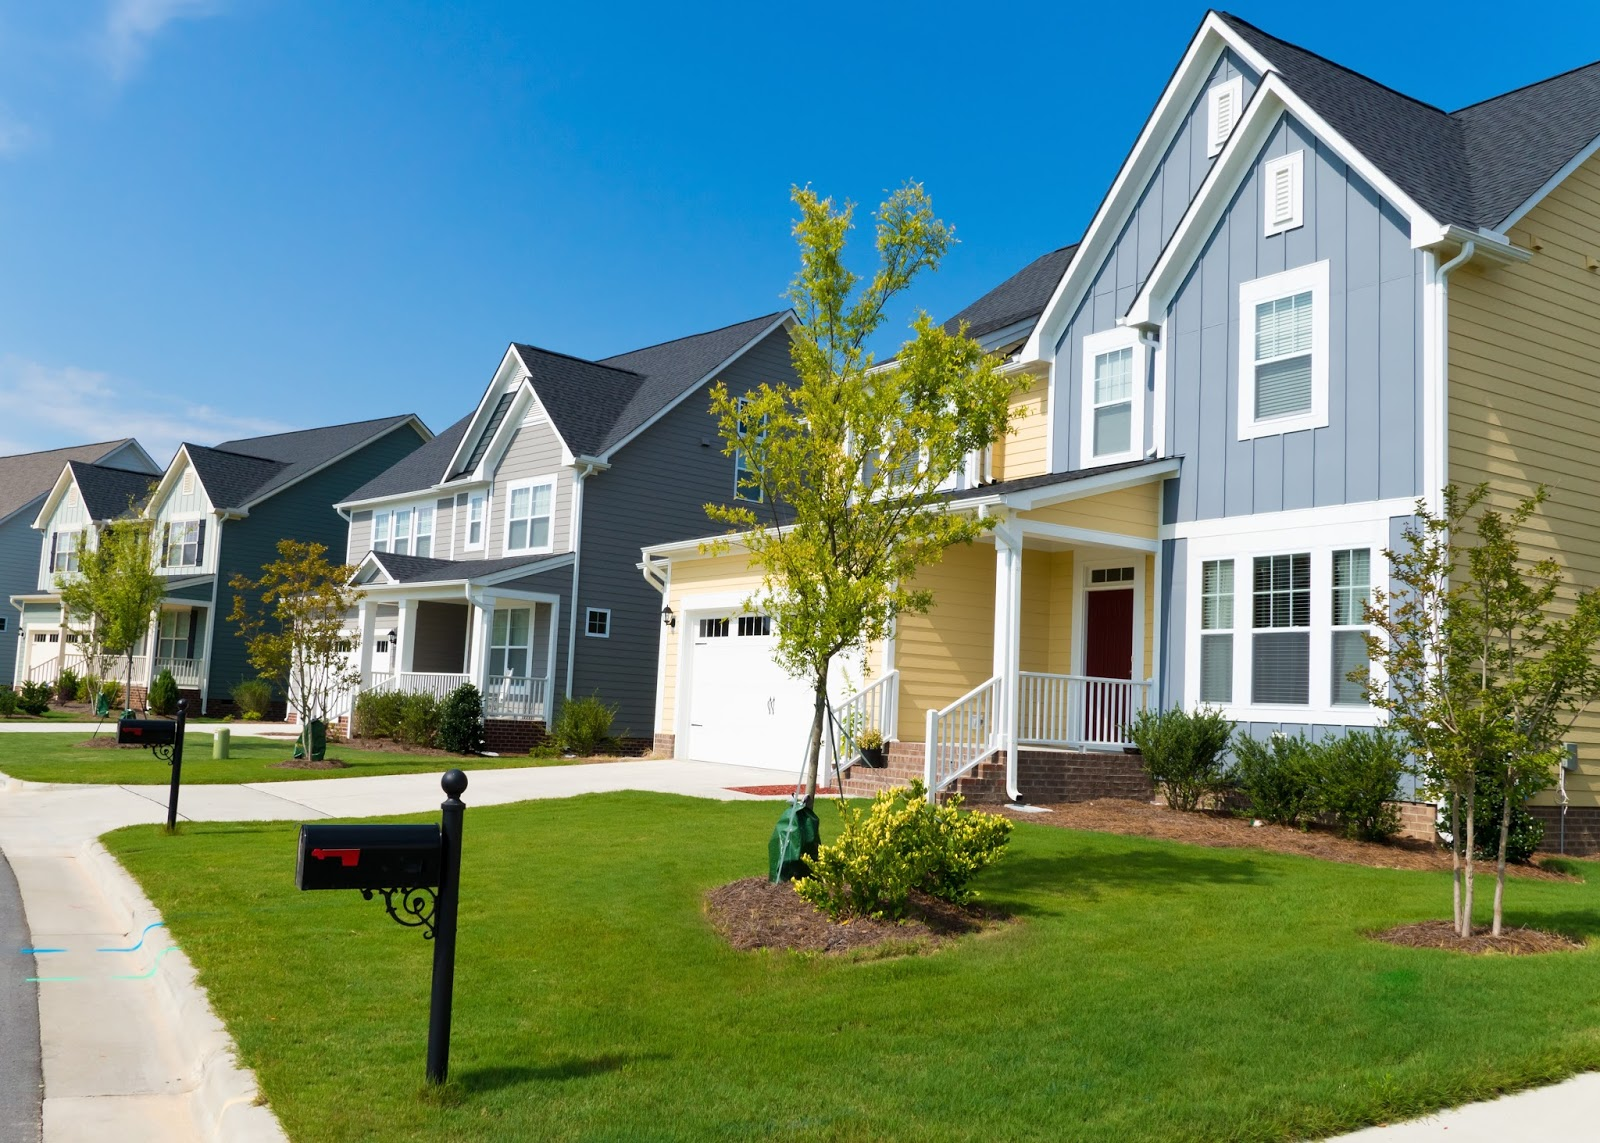 Helping Your House: 4 Tips for Adding Value to Your Home  via  www.productreviewmom.com